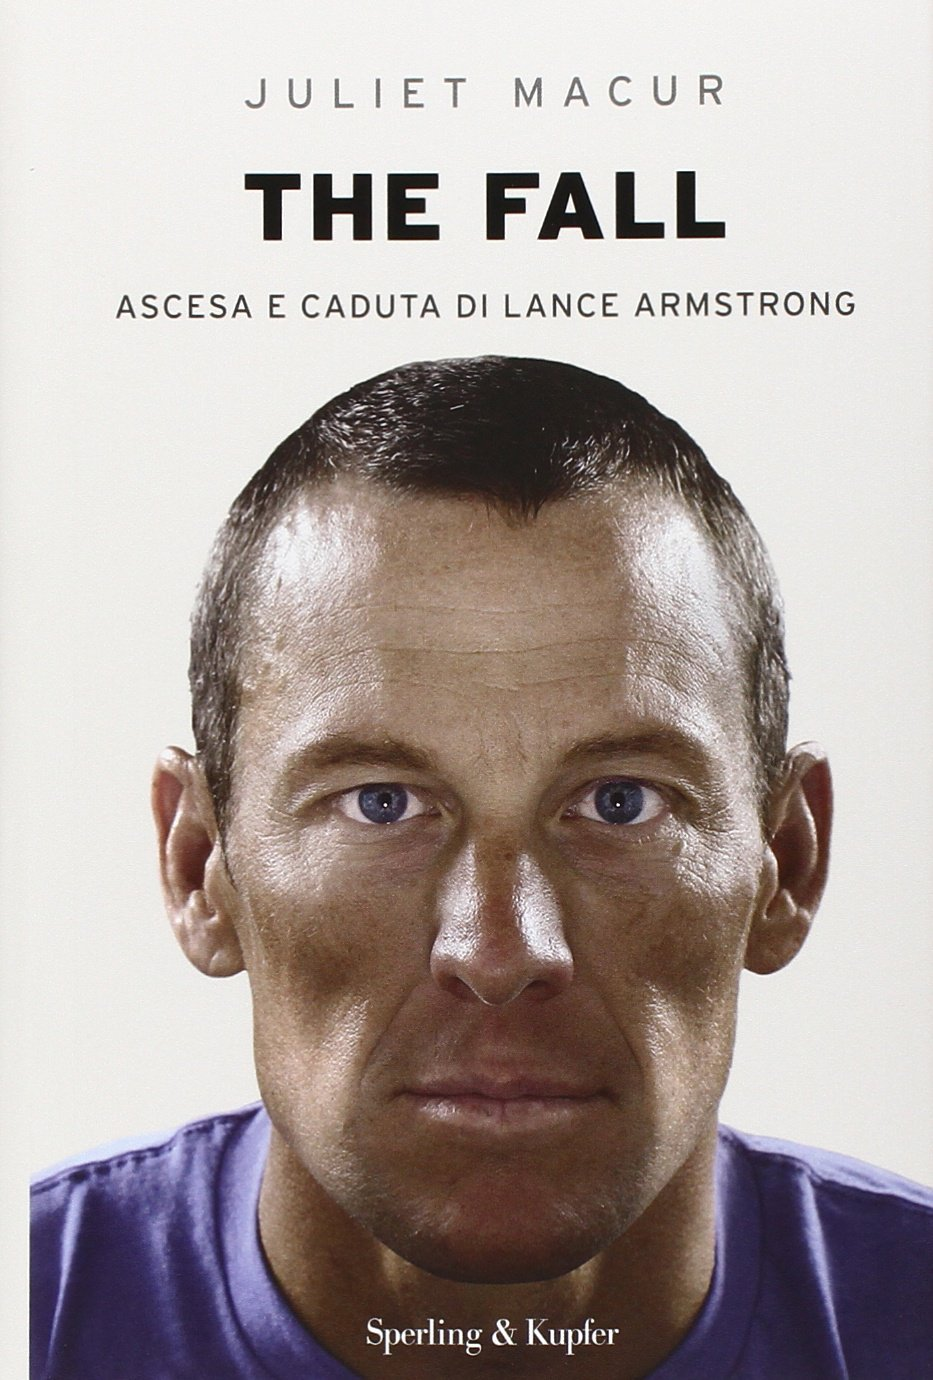 The fall. Ascesa e caduta di Lance Armstrong Copertina rigida – 15 apr 2014 Juliet Macur D. Fasic Sperling & Kupfer 8820056232